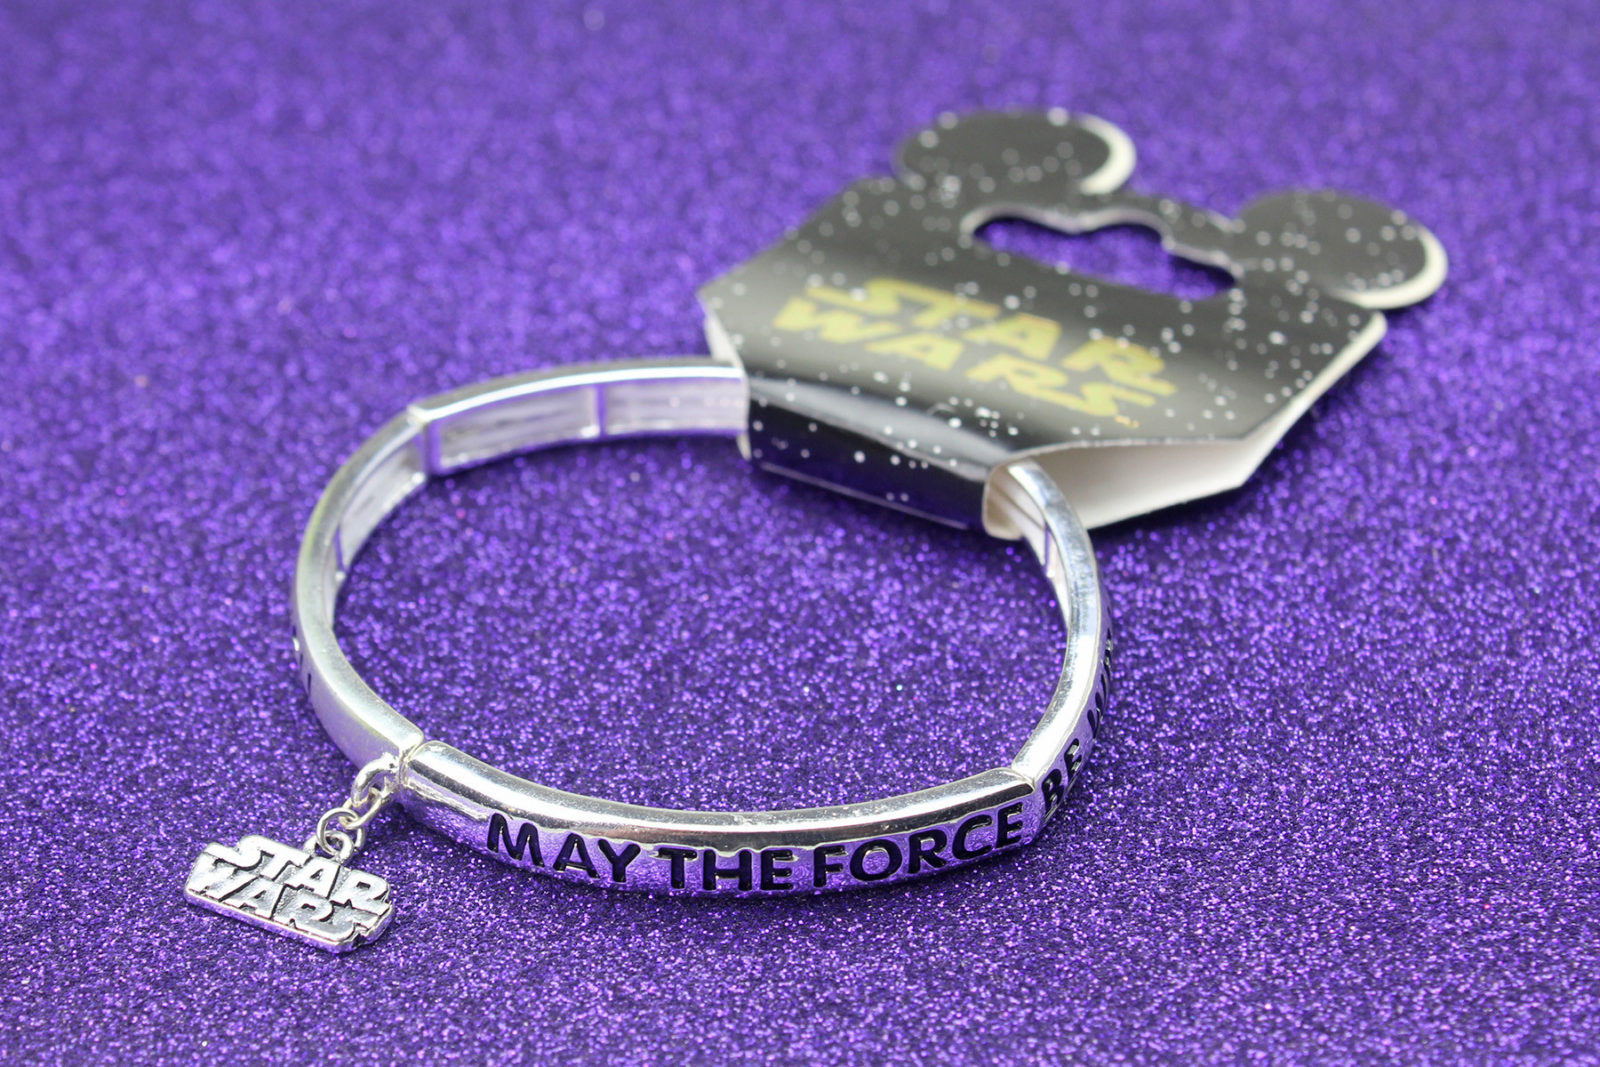 Review – Disney Star Wars bracelet